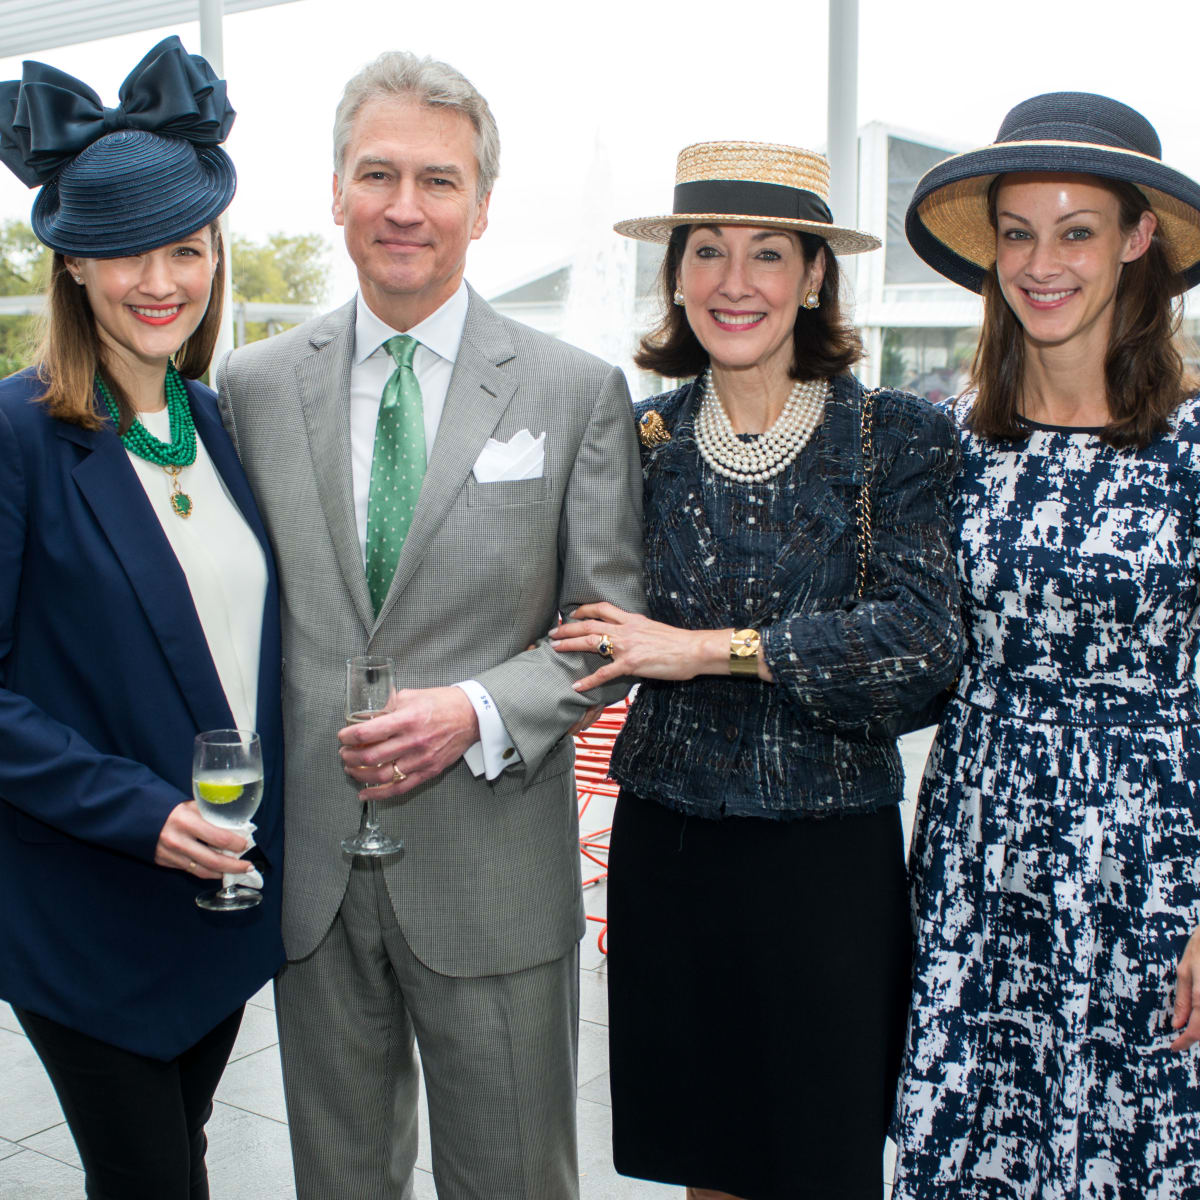 Hats in the Park, March 2016,  Annie Eifler, Sanford & Susie Criner, Kate Bellin